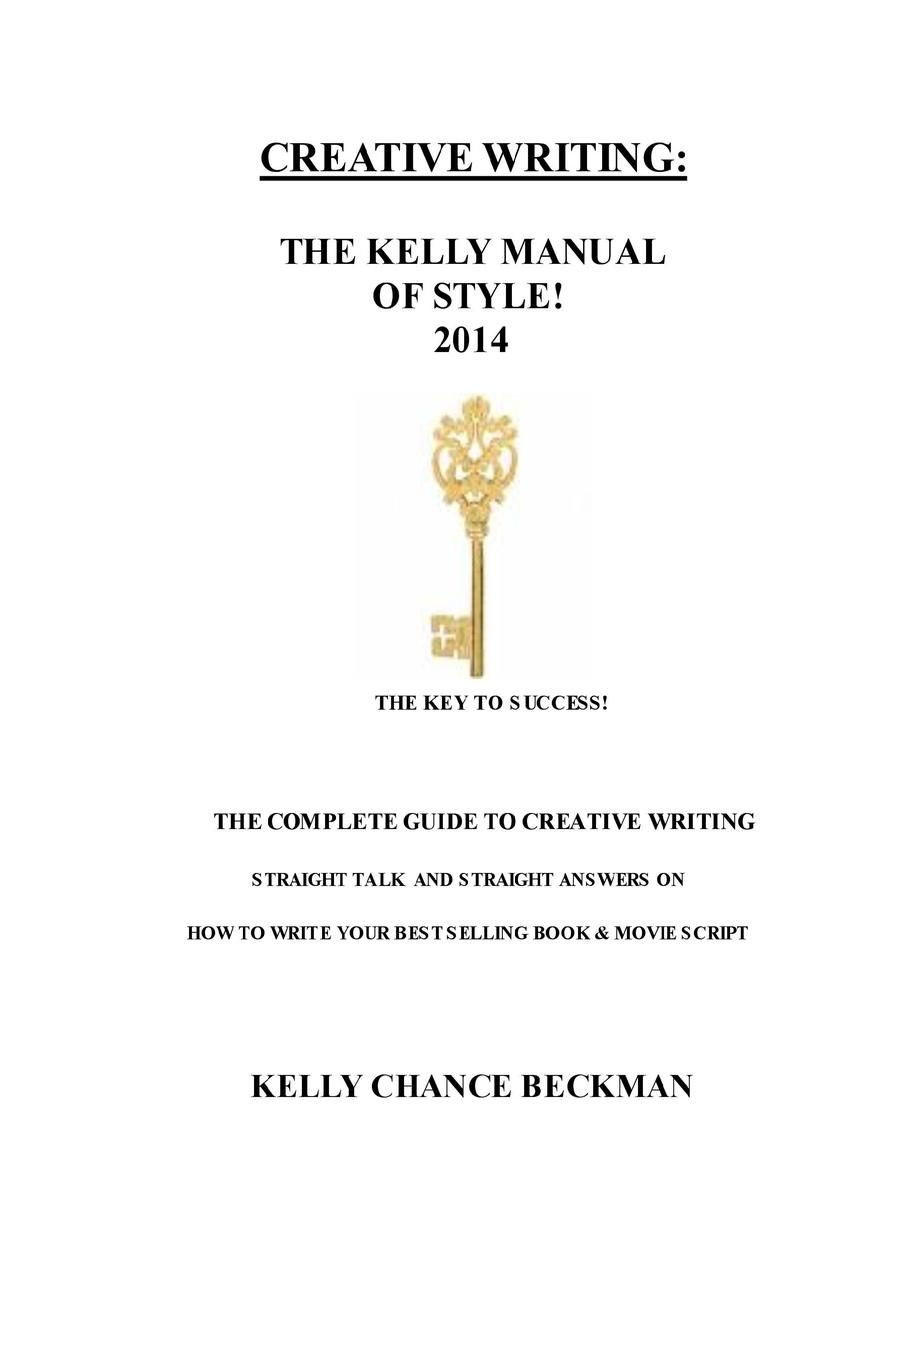 Kelly Chance Beckman Creative Writing-The 2014 Kelly Manual of Style a movie and a book